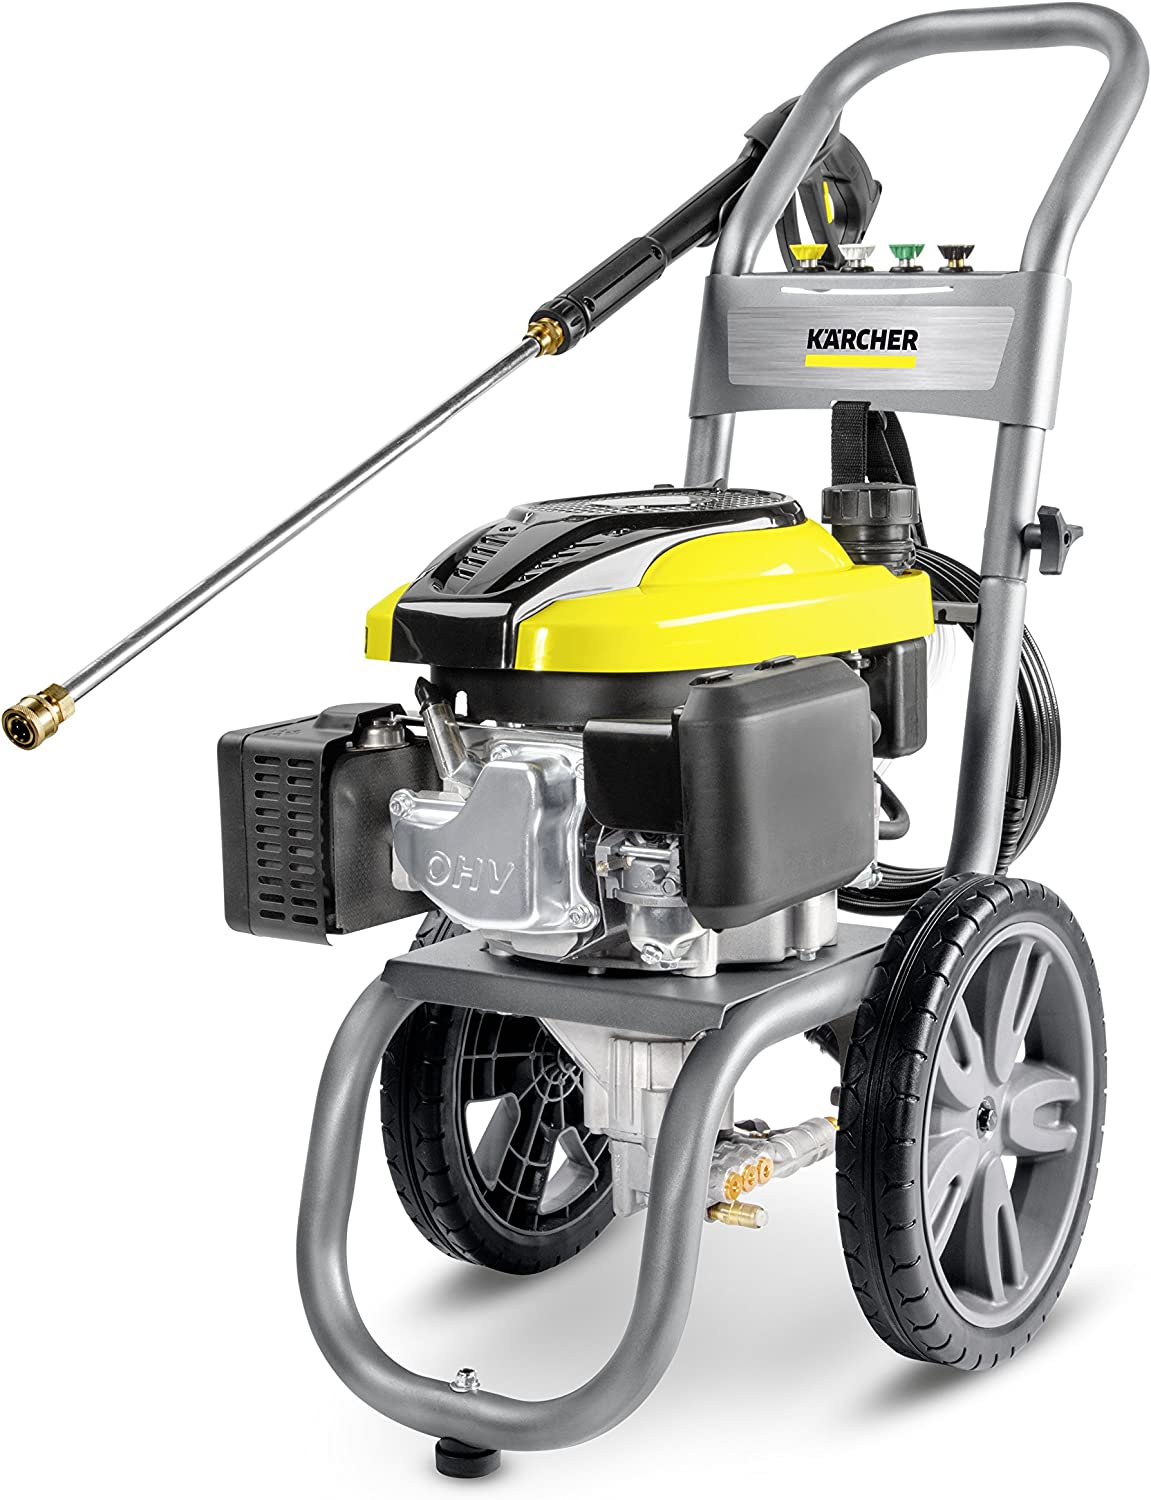 Karcher Raleigh Mall Sale Special Price 11073830 G2700R Gas Pressure Washer x 28